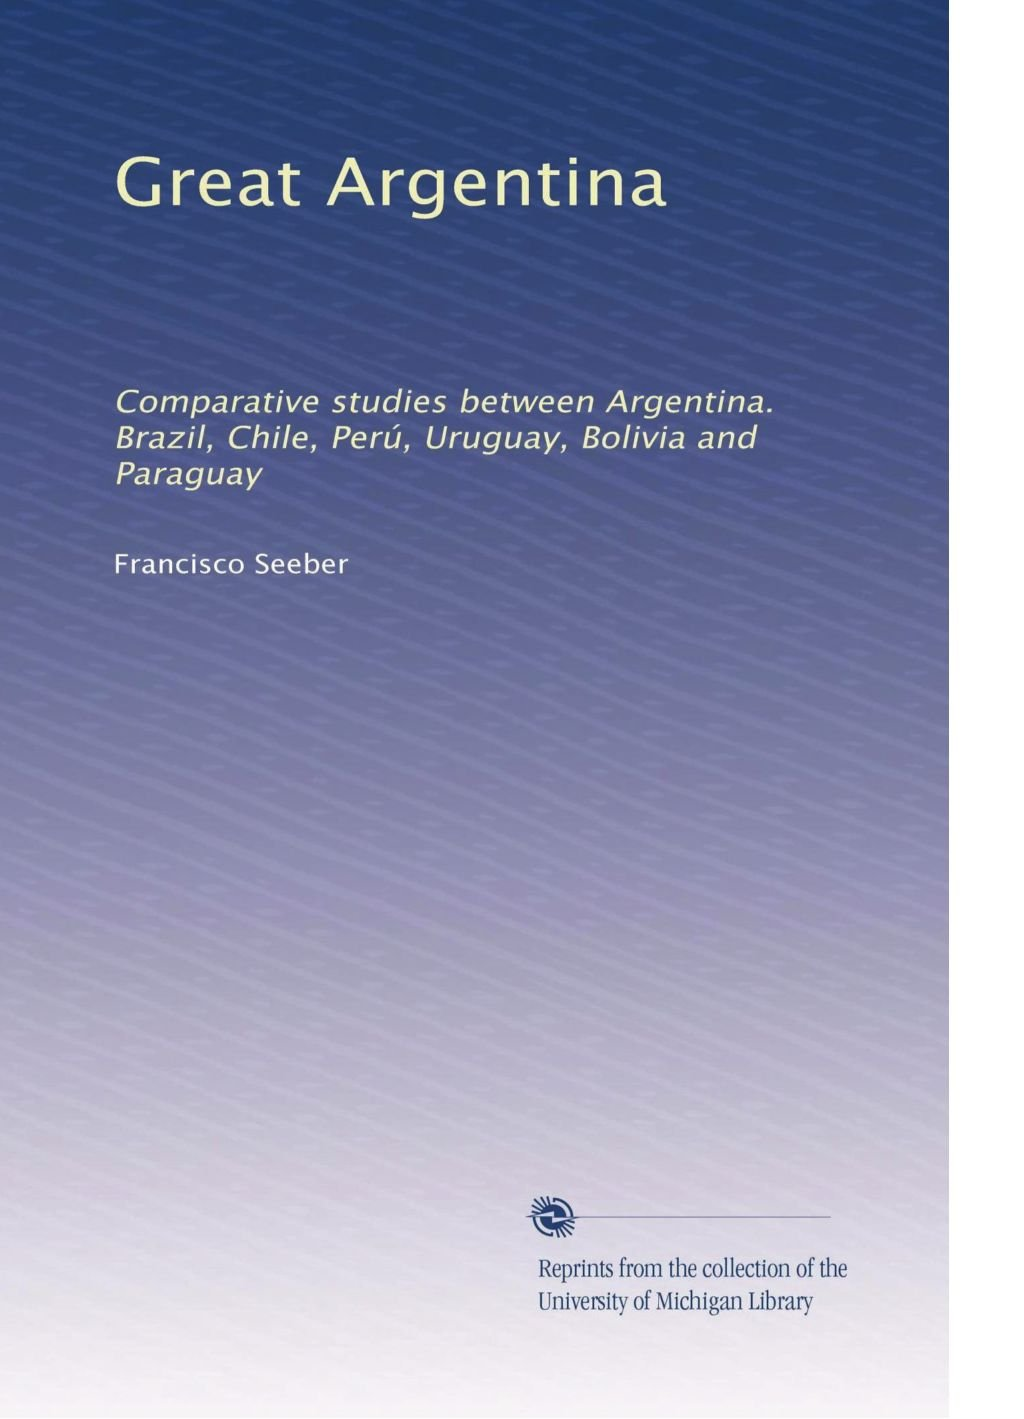 Great Argentina: Comparative studies between Argentina. Brazil, Chile, Perú, Uruguay, Bolivia and Paraguay